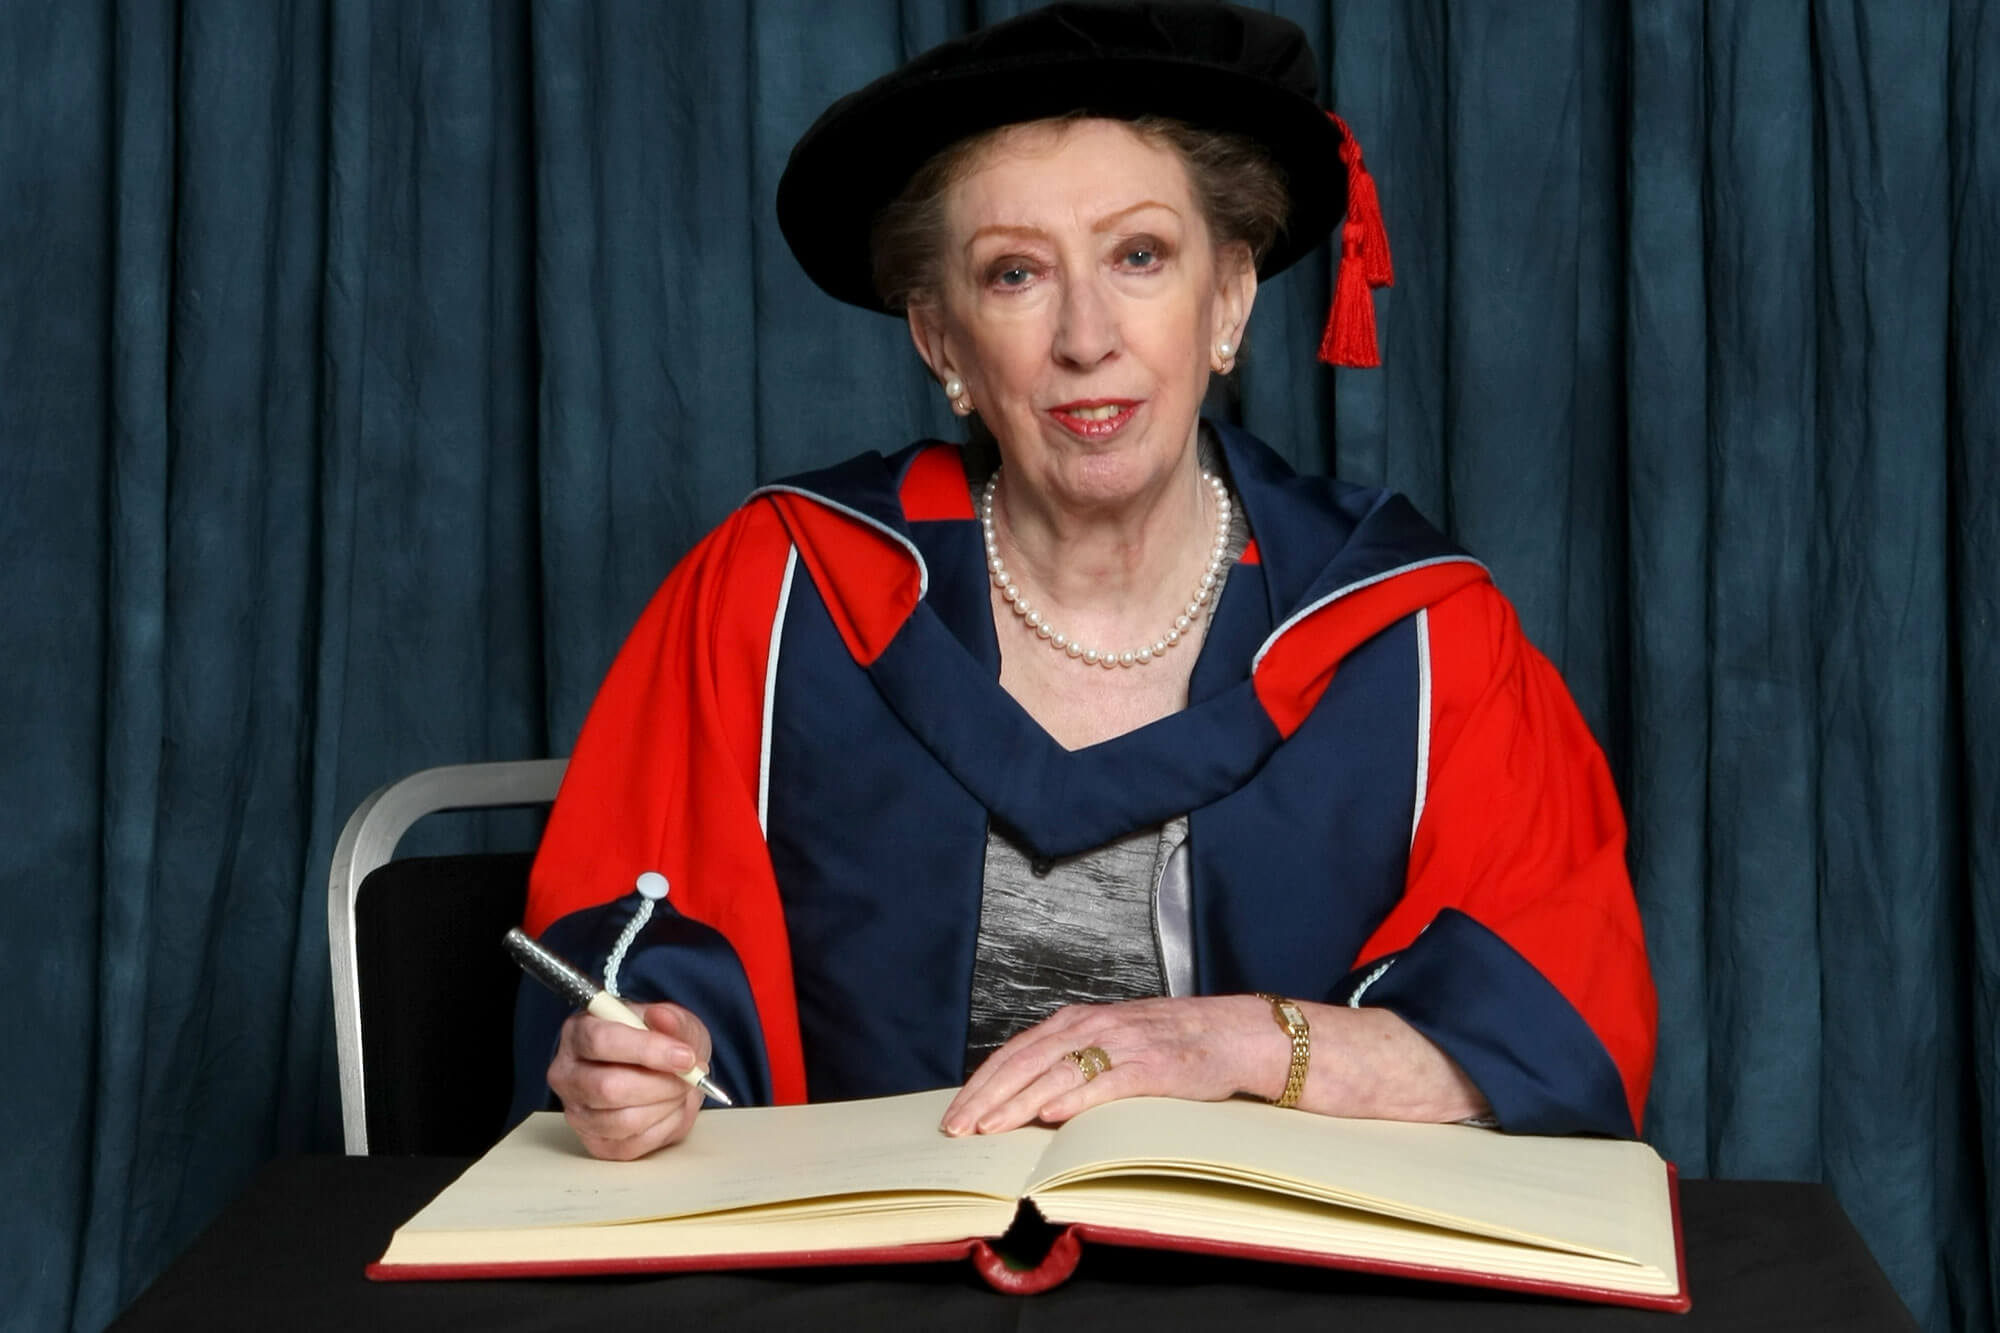 University of Derby Honorand Dame Margaret Beckett at Awards Ceremony